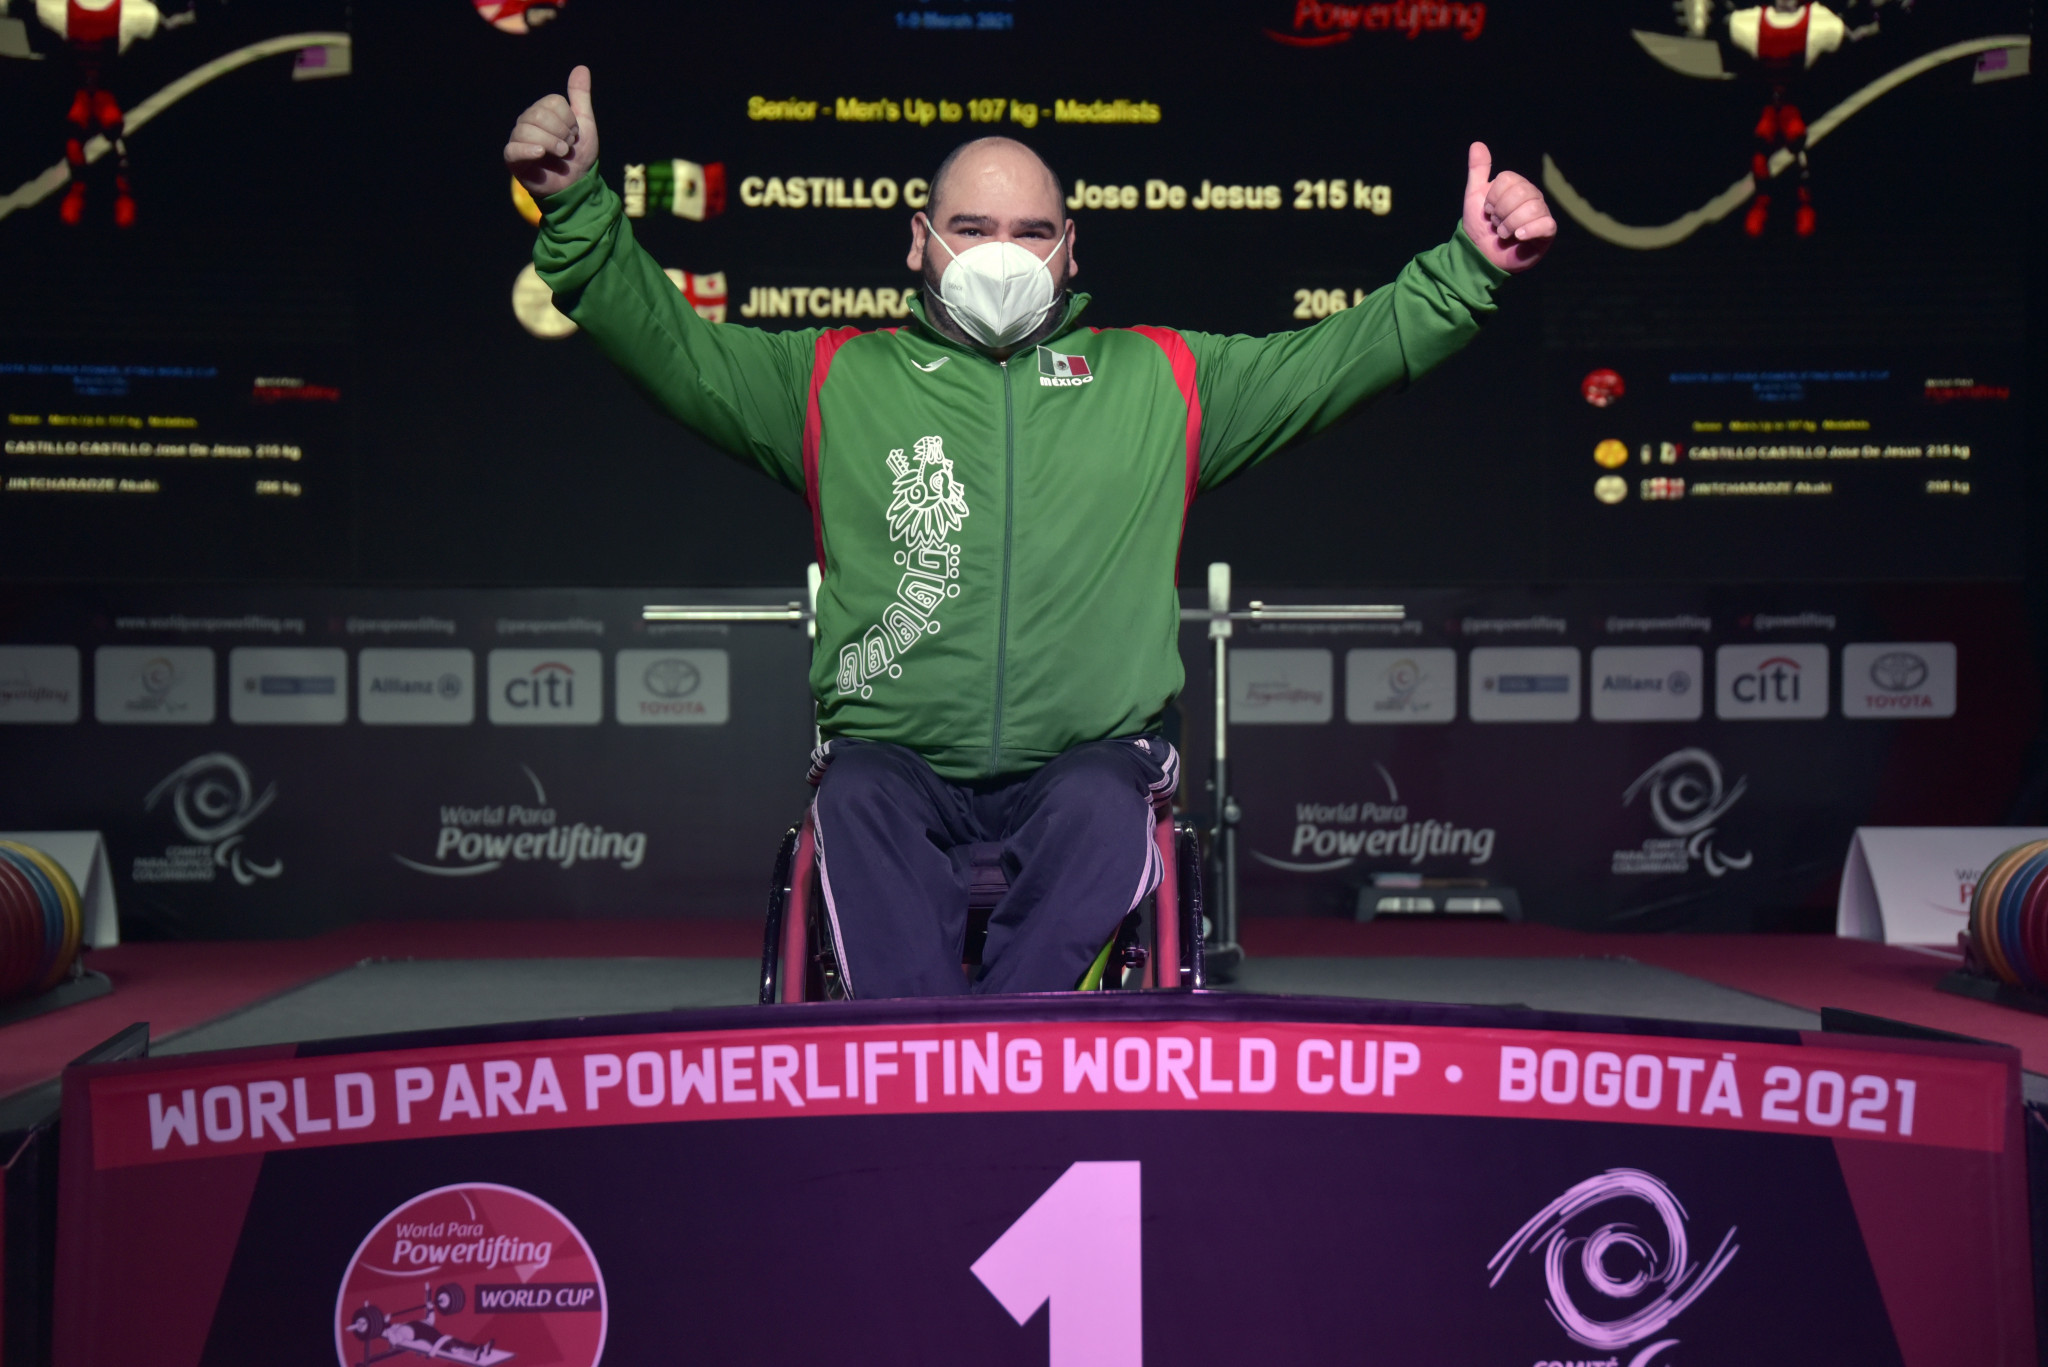 Parapan American Games champion Jose De Jesus Castillo Castillo was among the winners on the World Cup's last day ©Getty Images